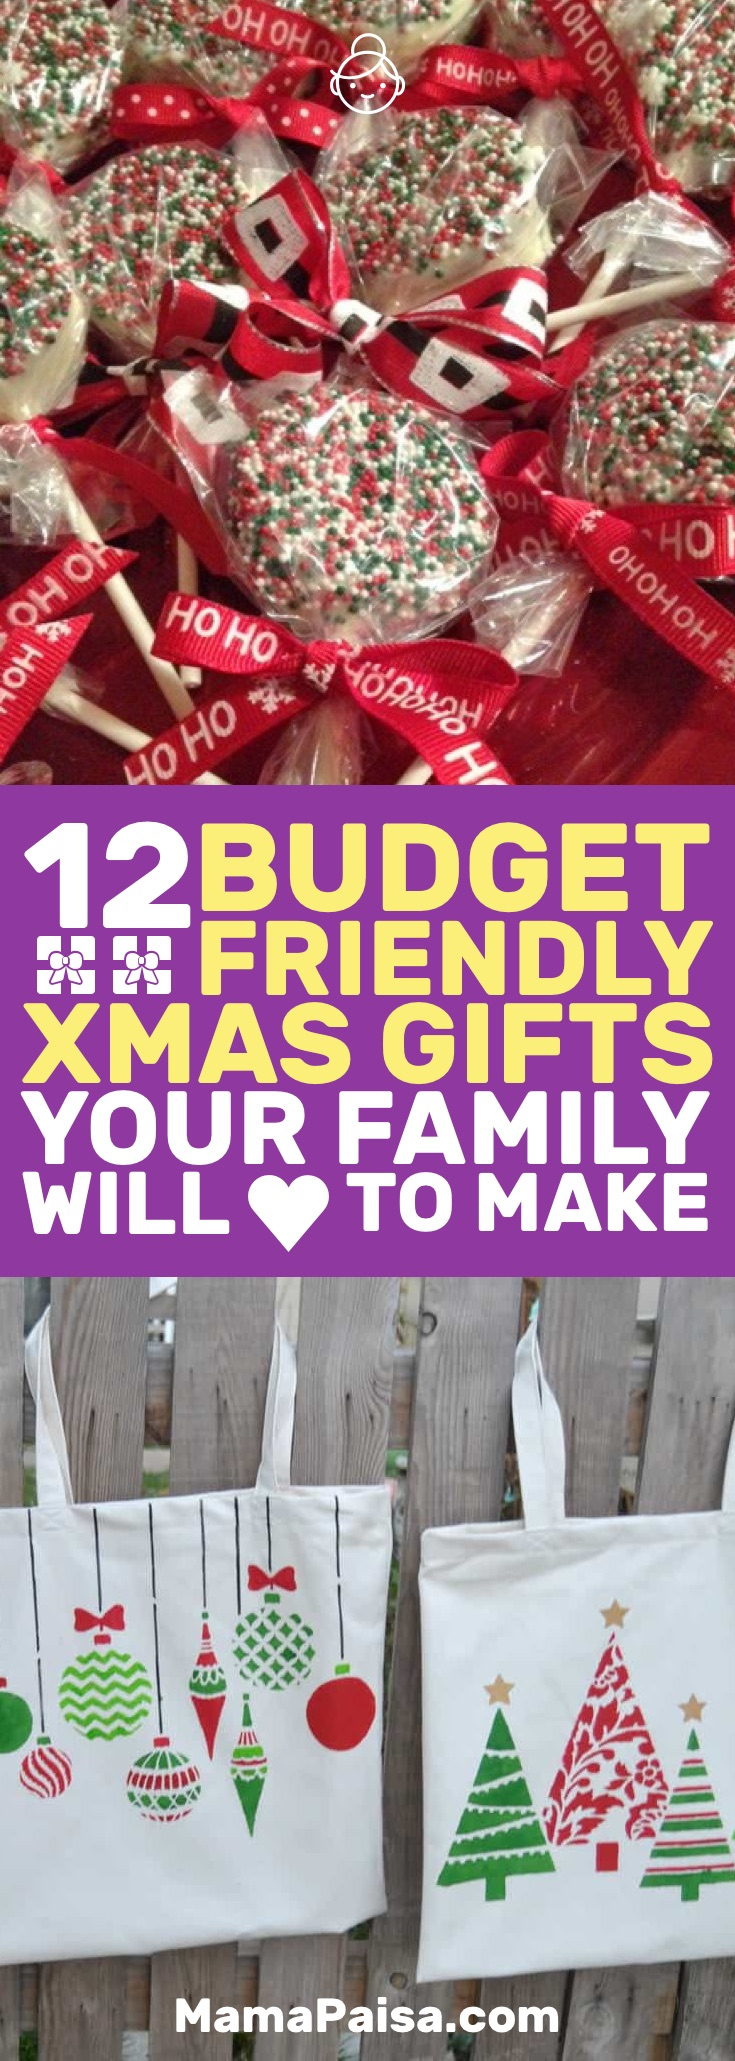 12 Budget-Friendly DIY Christmas Gifts that Your Family Will Enjoy ...